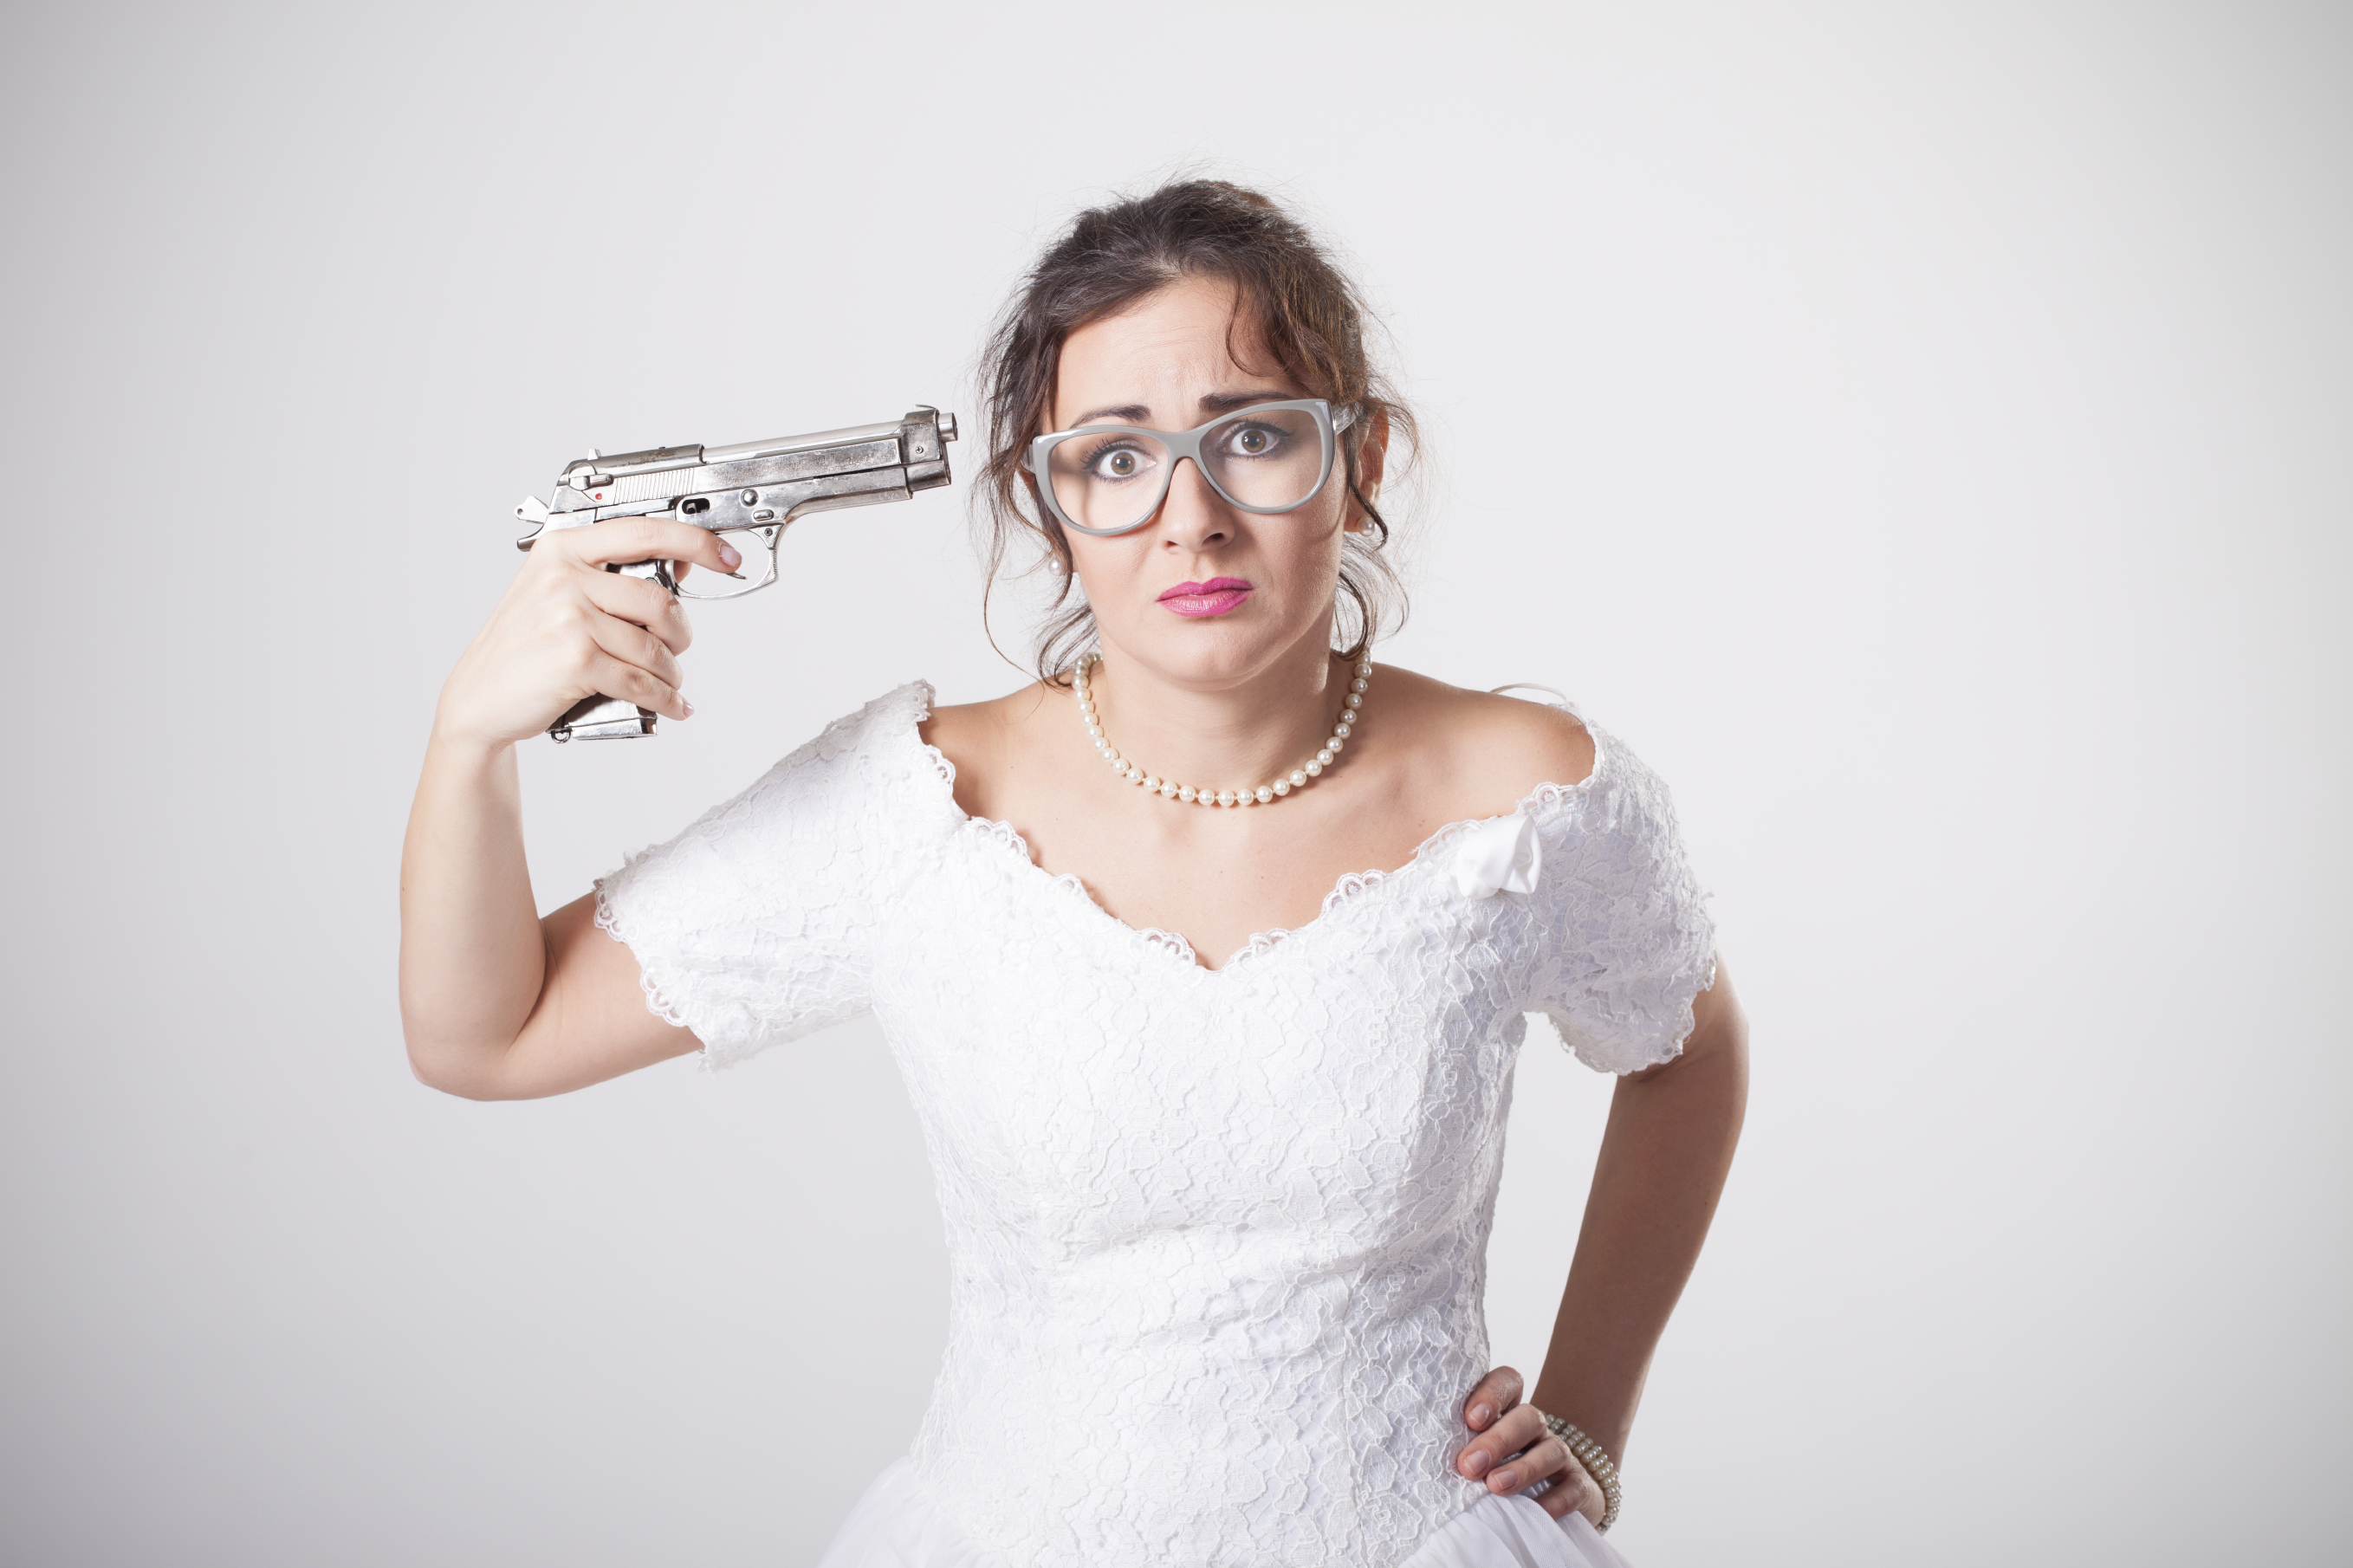 20 Quirky Alternatives To The Traditional Wedding, Part I